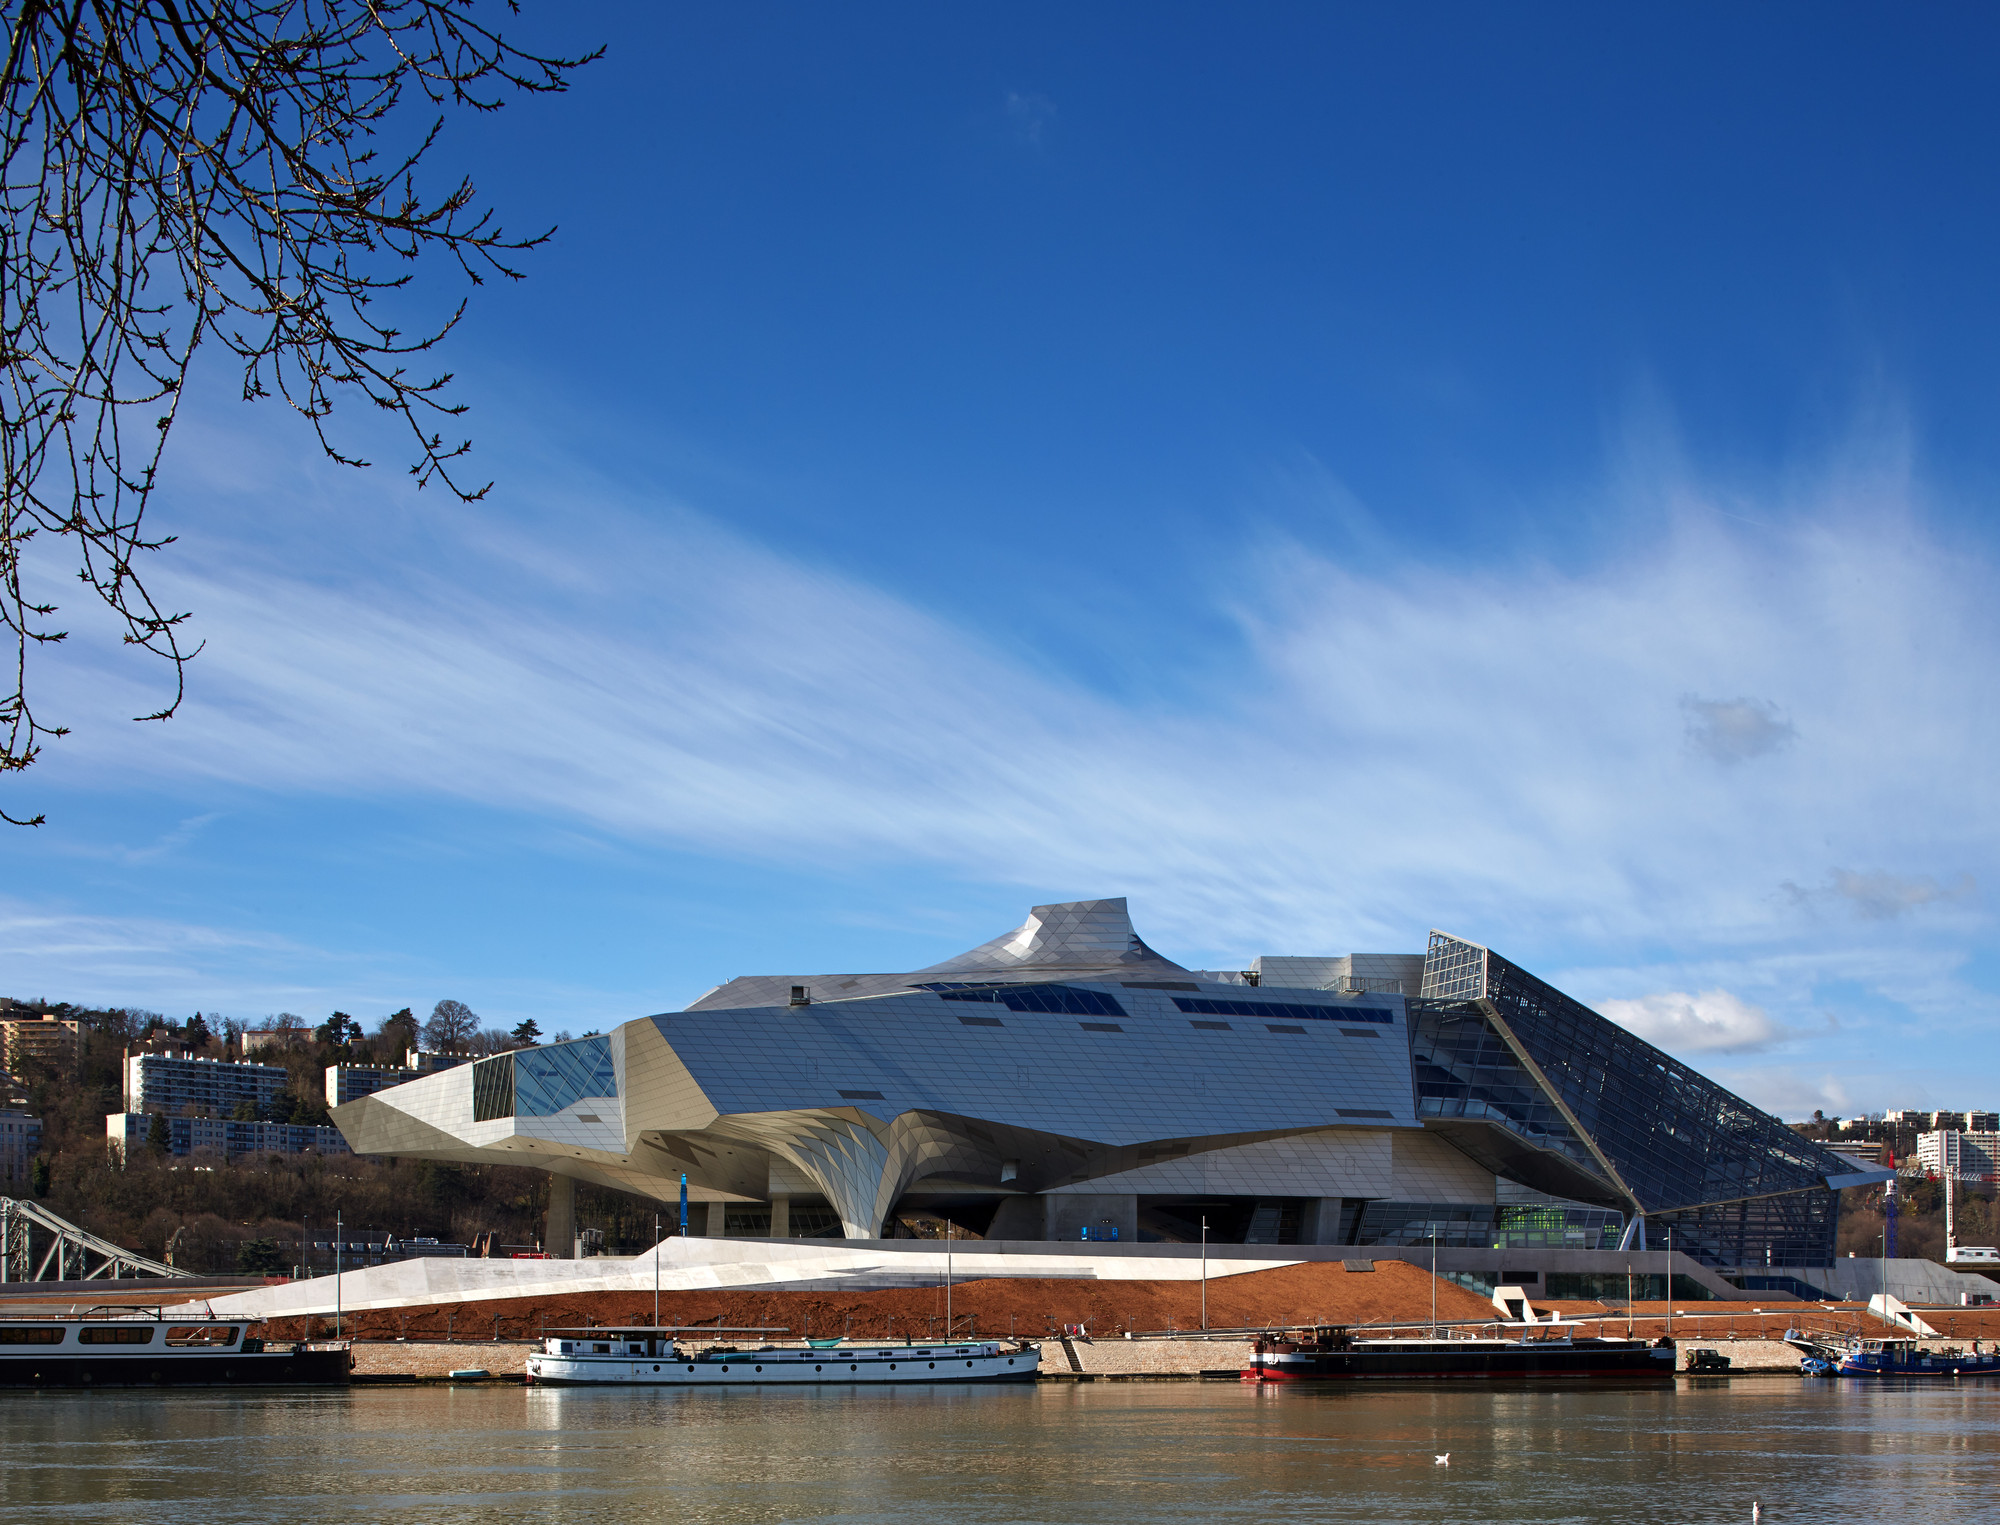 Coop Himmelb(l)au's Musée des Confluences Through the Lens of Edmund Sumner, © Edmund Sumner